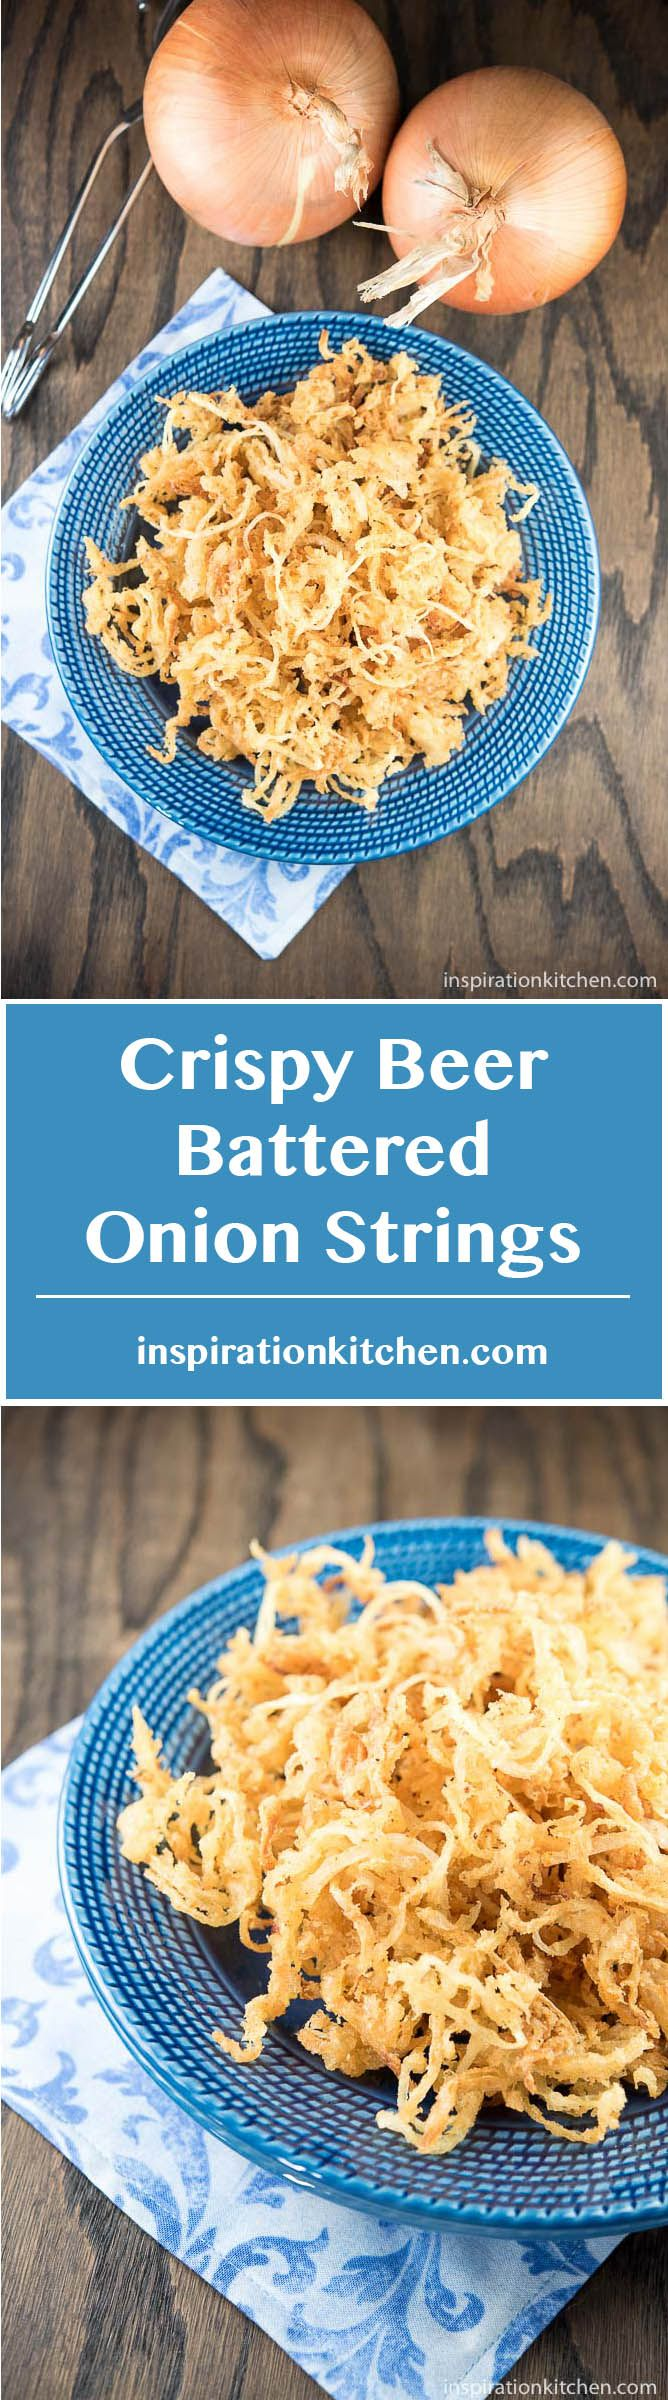 Crispy Beer Battered Onion Strings - inspirationkitchen.com